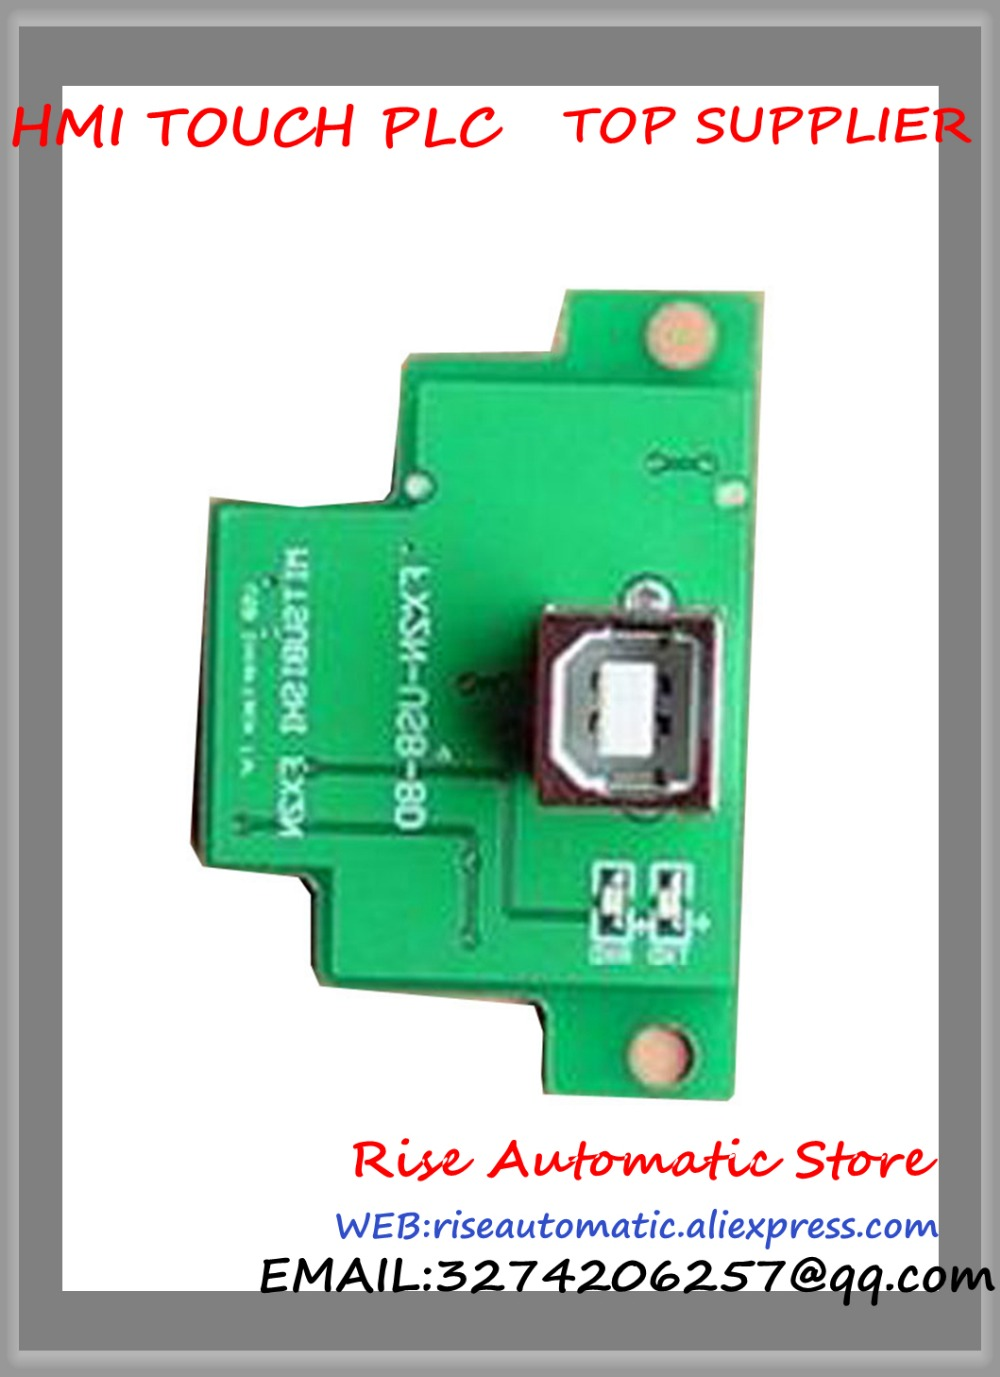 New in box FX2N-USB-BD USB interface Board for FX2N PLC FX2NUSBBD FX2N-USBBD communication board fx2n 8er plc